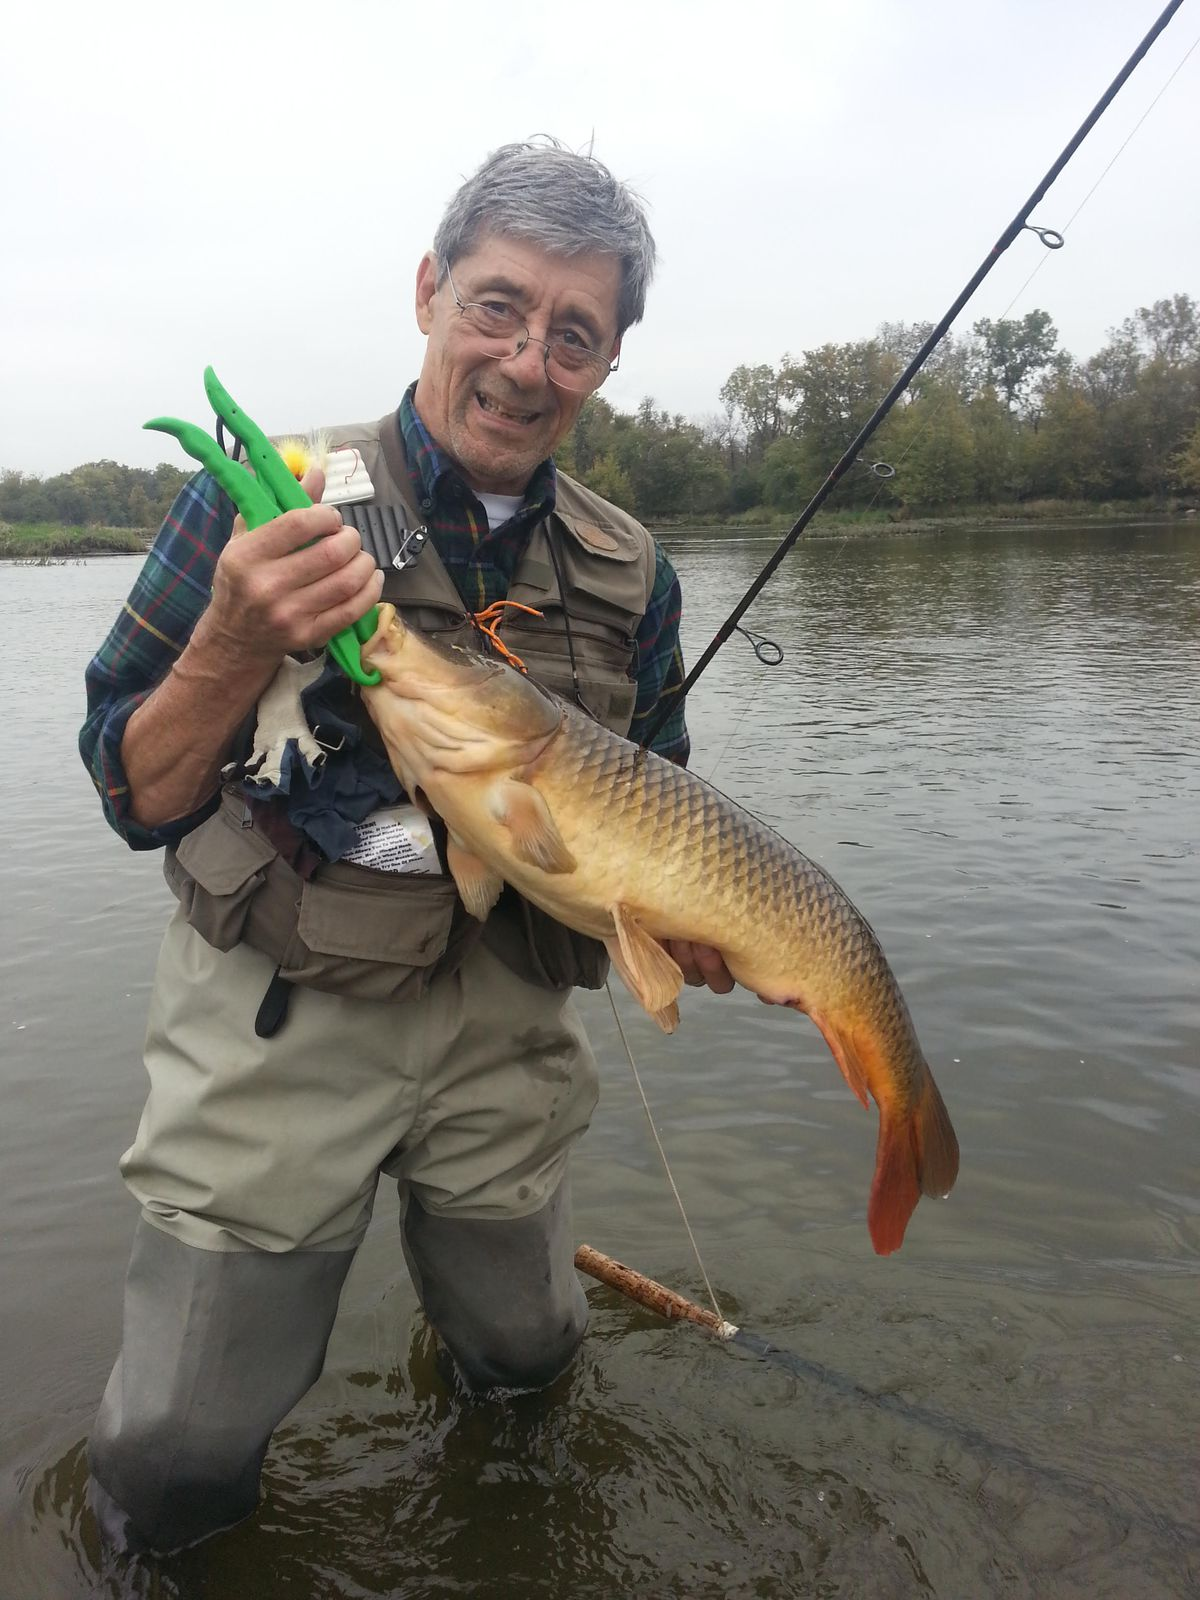 Ed Buric with a carp from the Des Plaines River. Provided photo